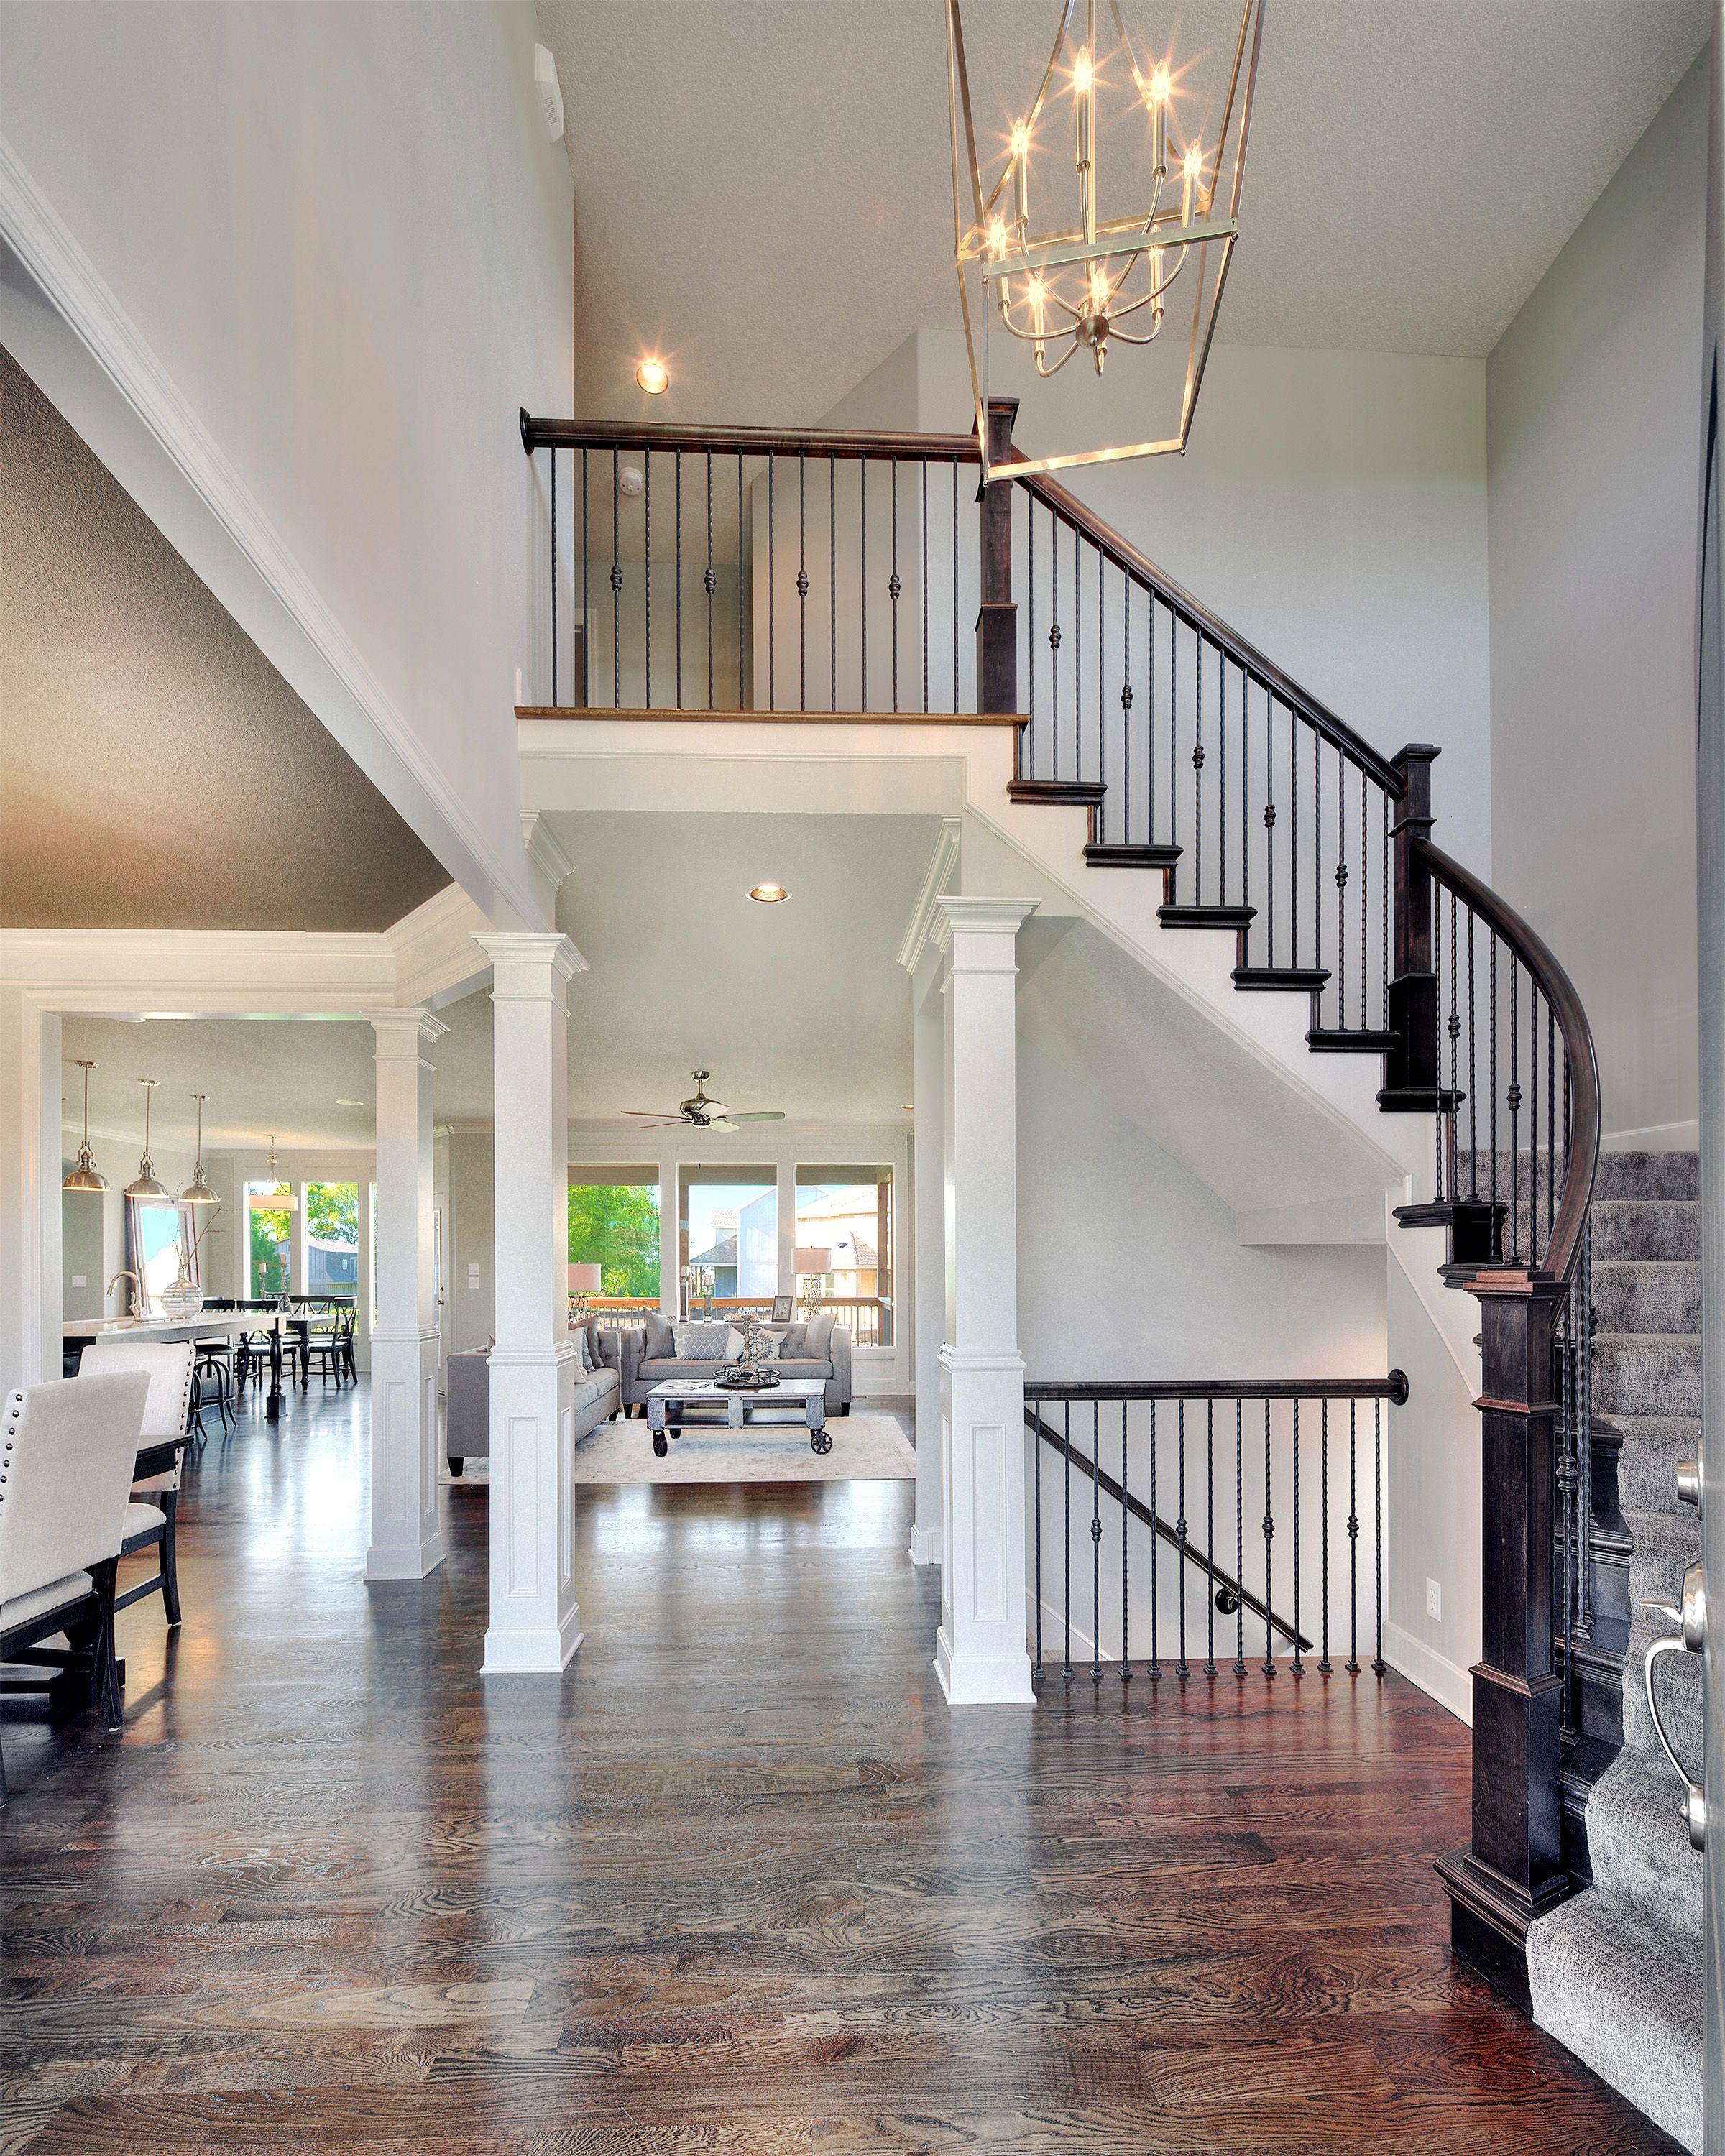 story entry way new home interior design open floor plan light also pin by beth herr on dream rh co pinterest